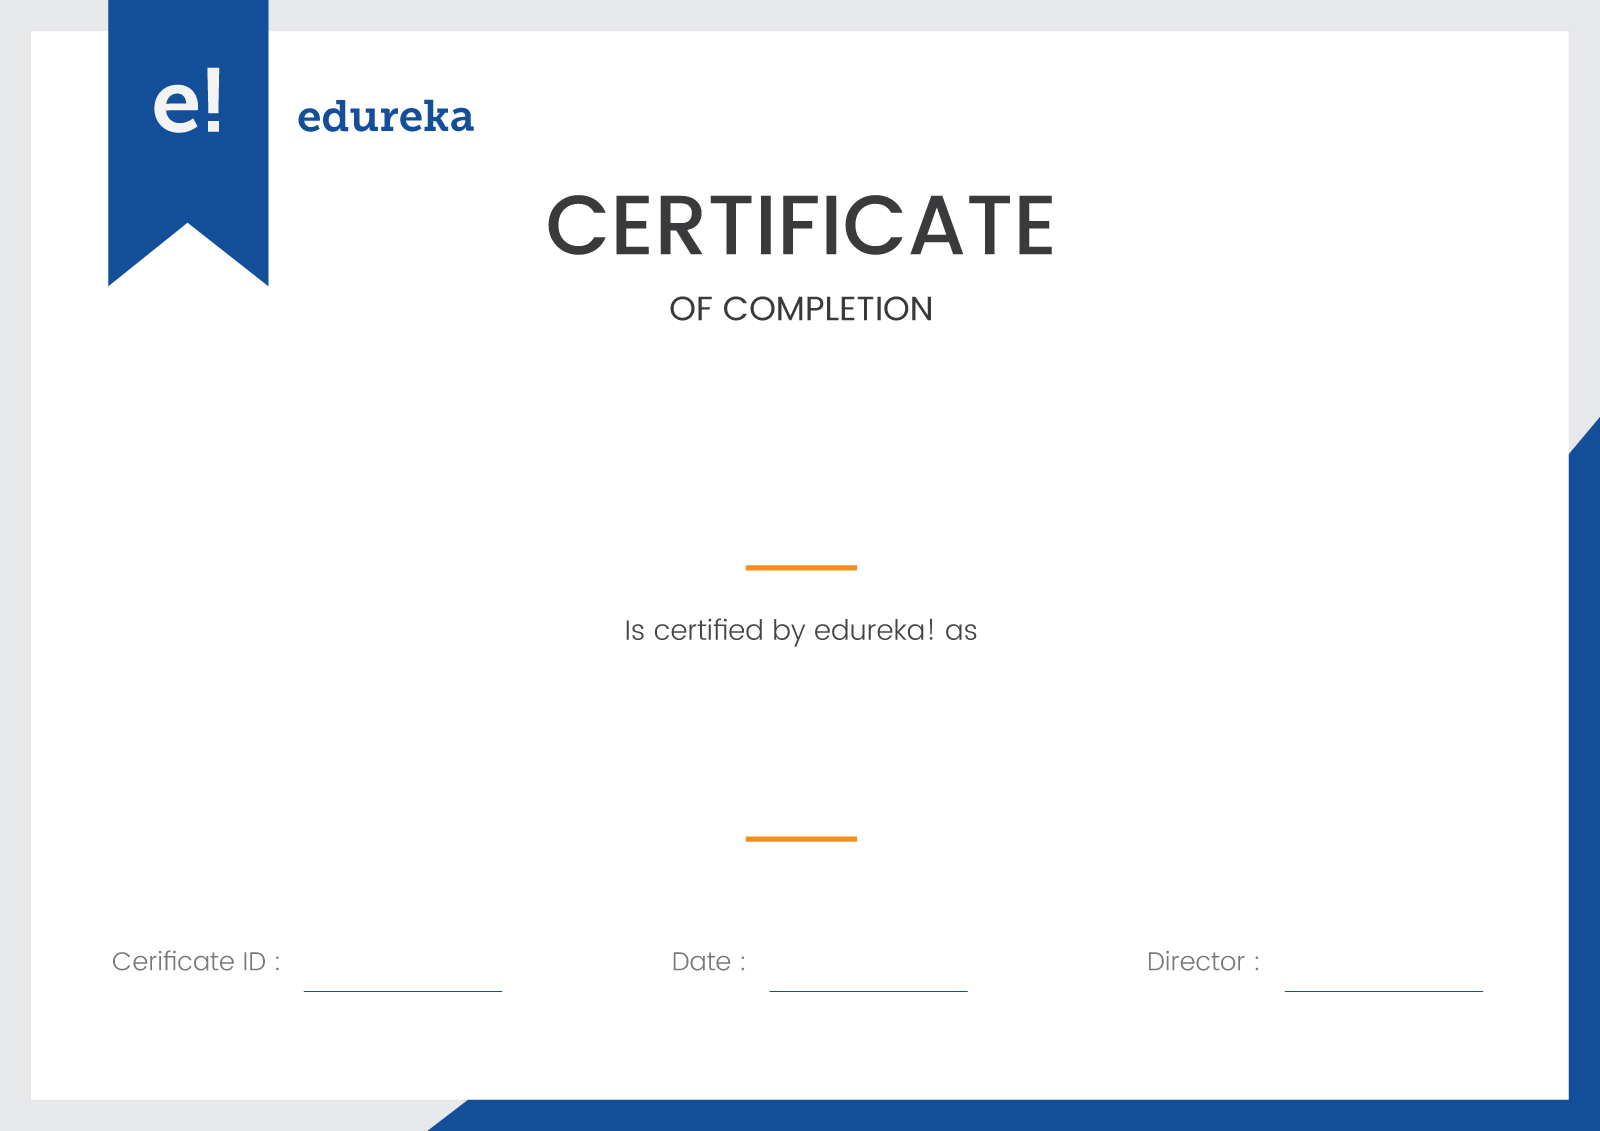 Aws architect certification training aws training edureka sapmle certificate sapmle certificate xflitez Image collections